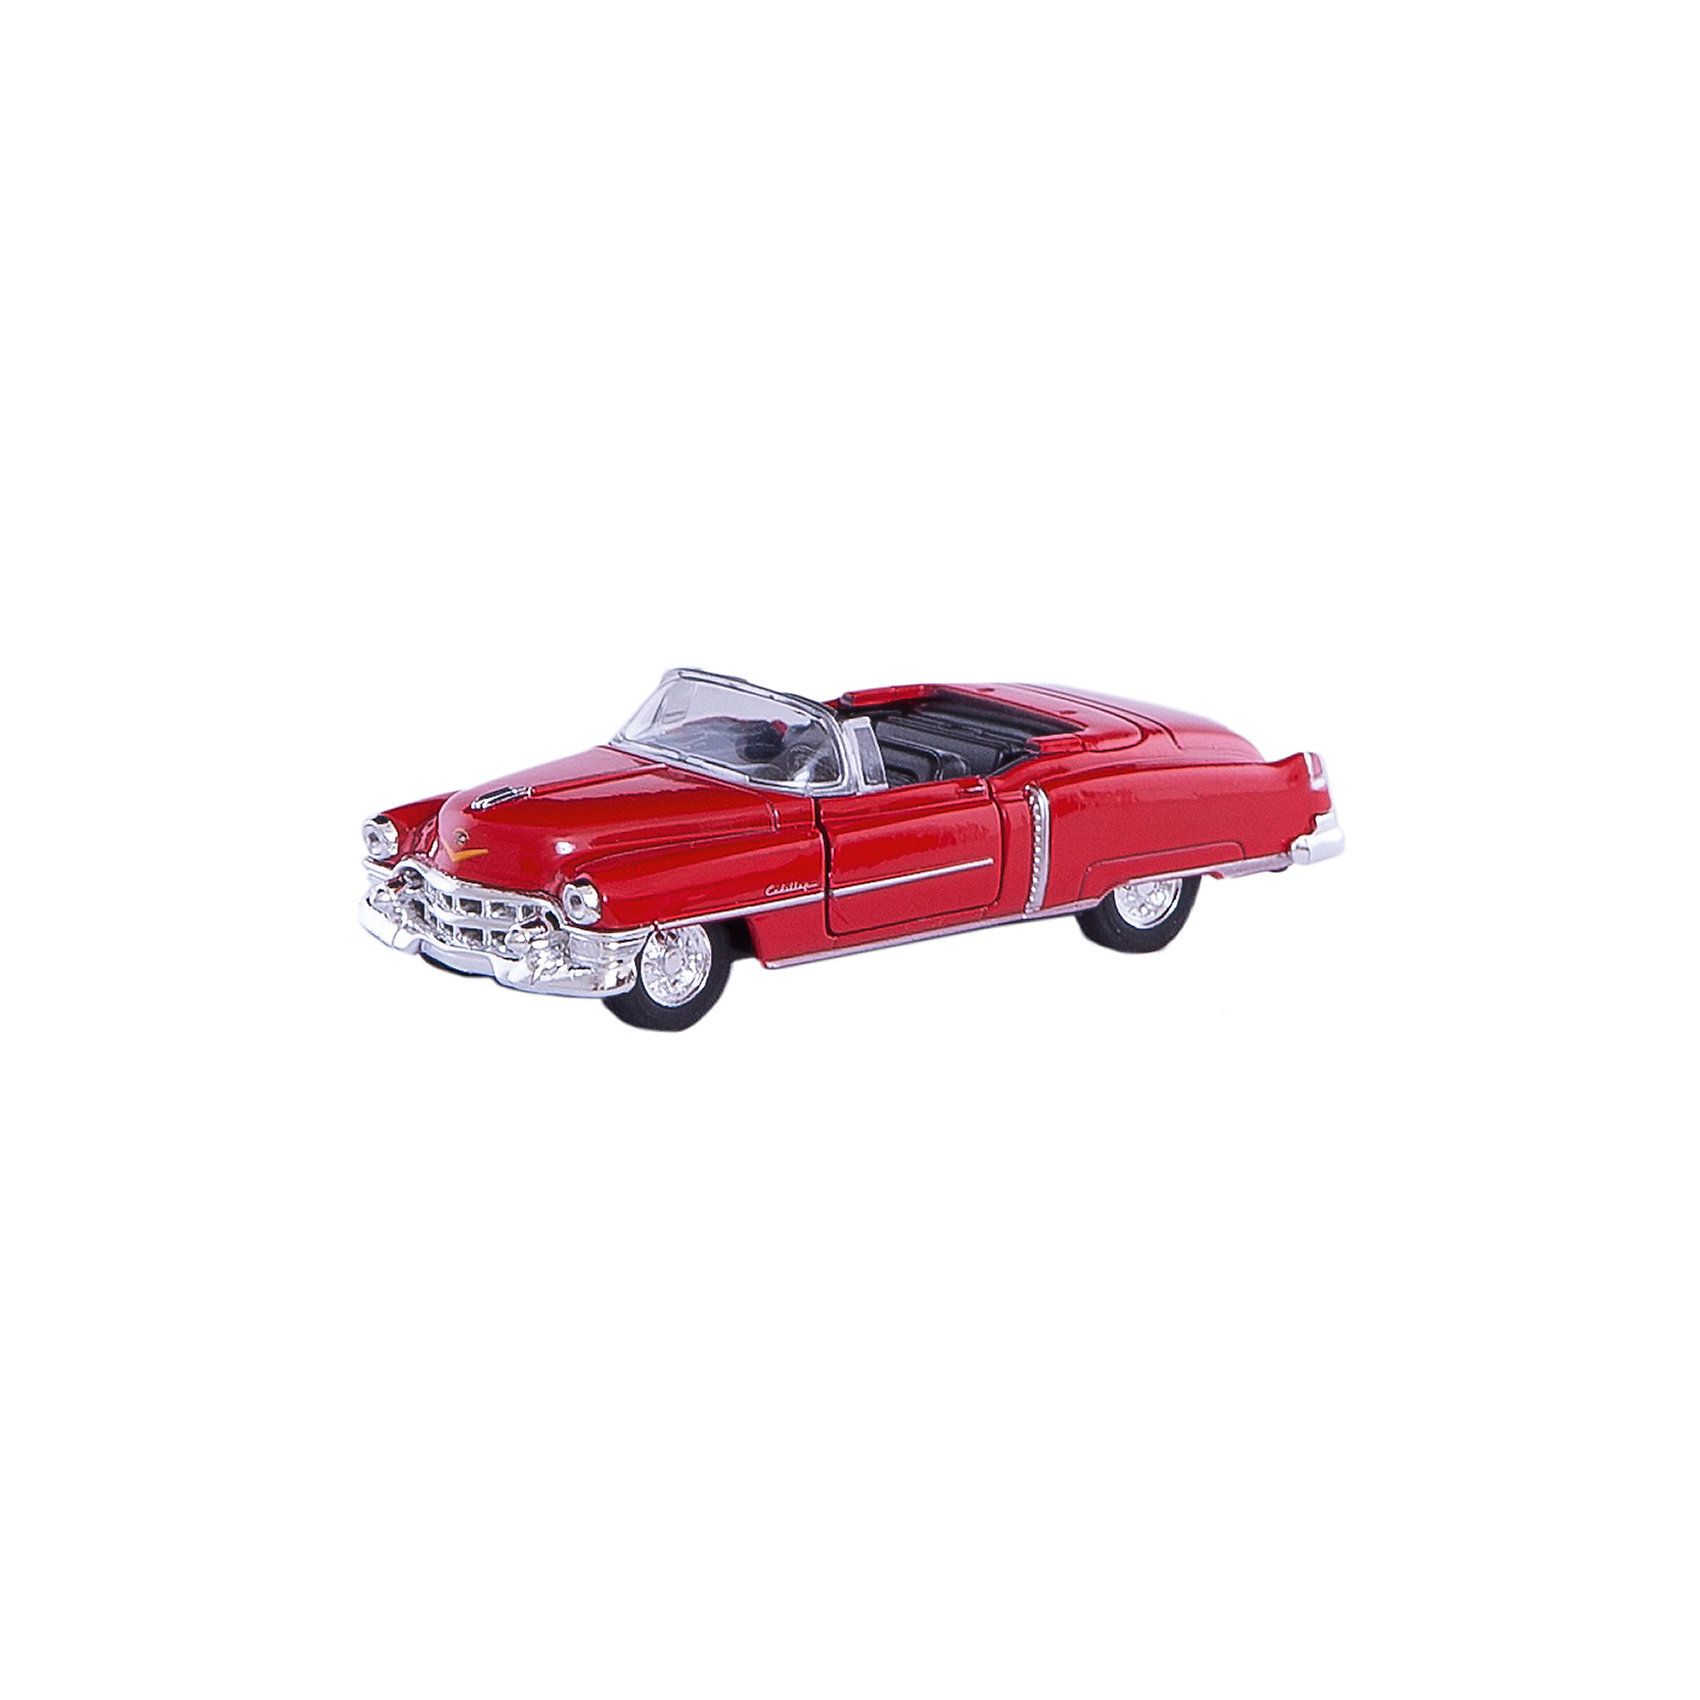 Welly Welly Модель машины 1:34-39 1953 Cadillac Eldorade welly welly гараж 3 машины и вертолет